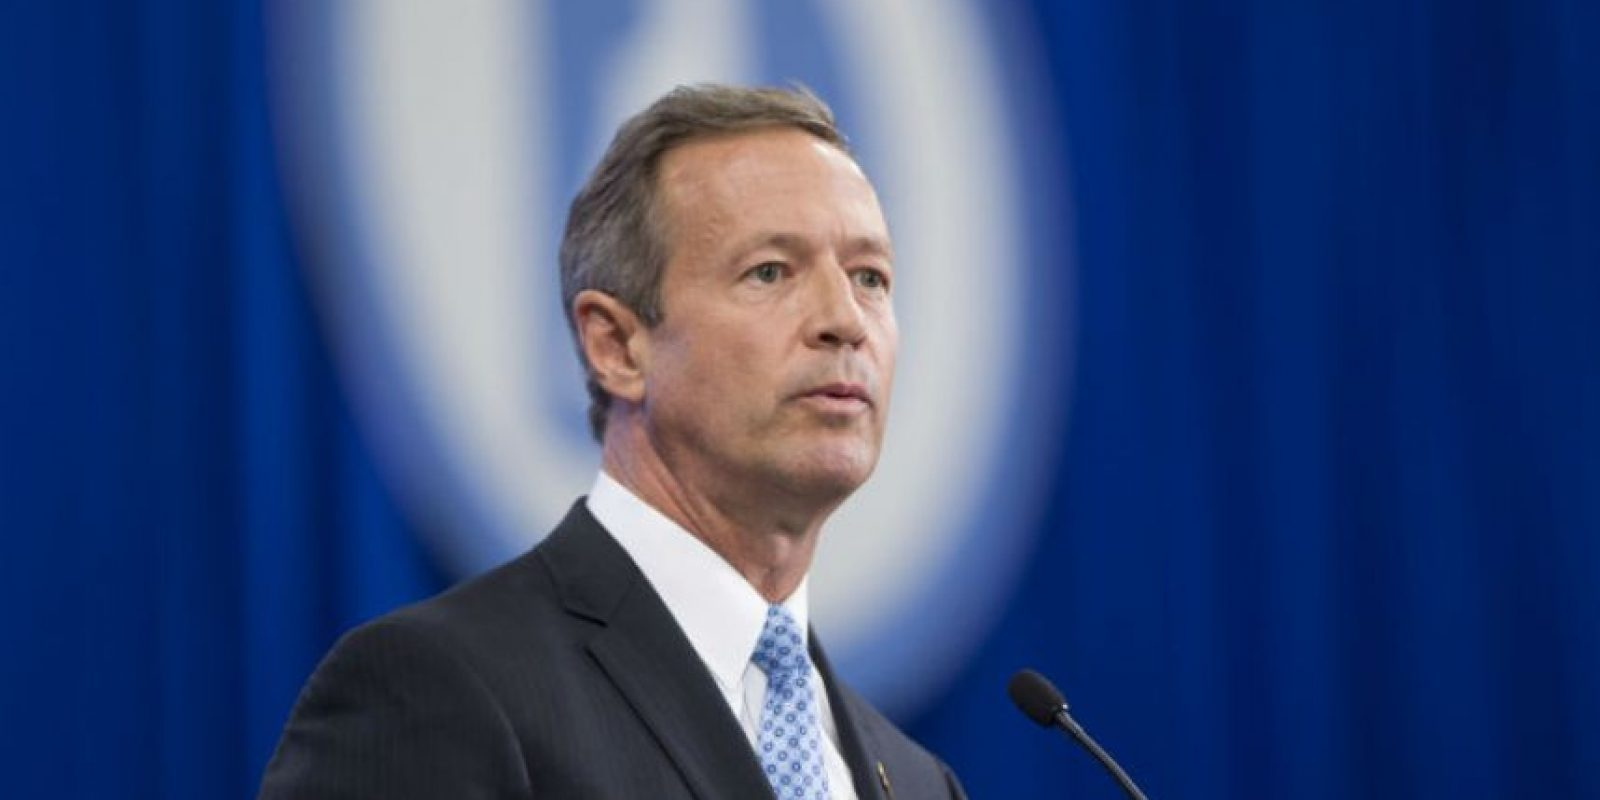 Martin O'Malley Foto: Getty Images